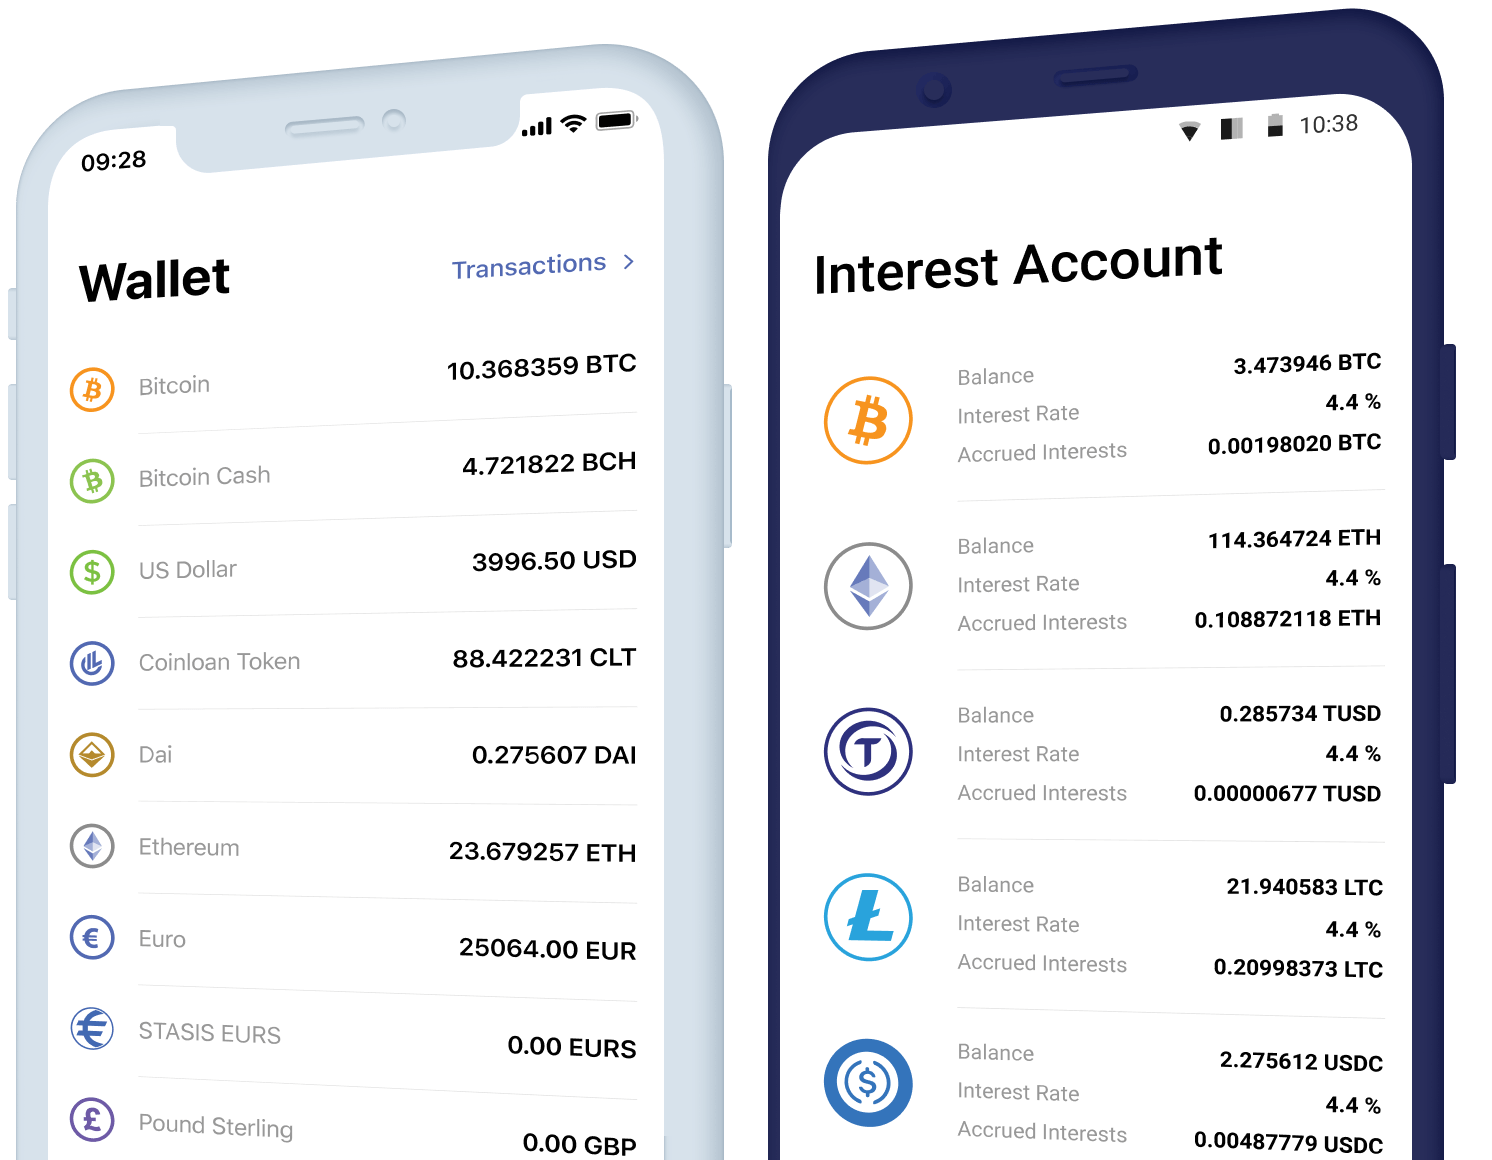 Get Our Mobile App CoinLoan